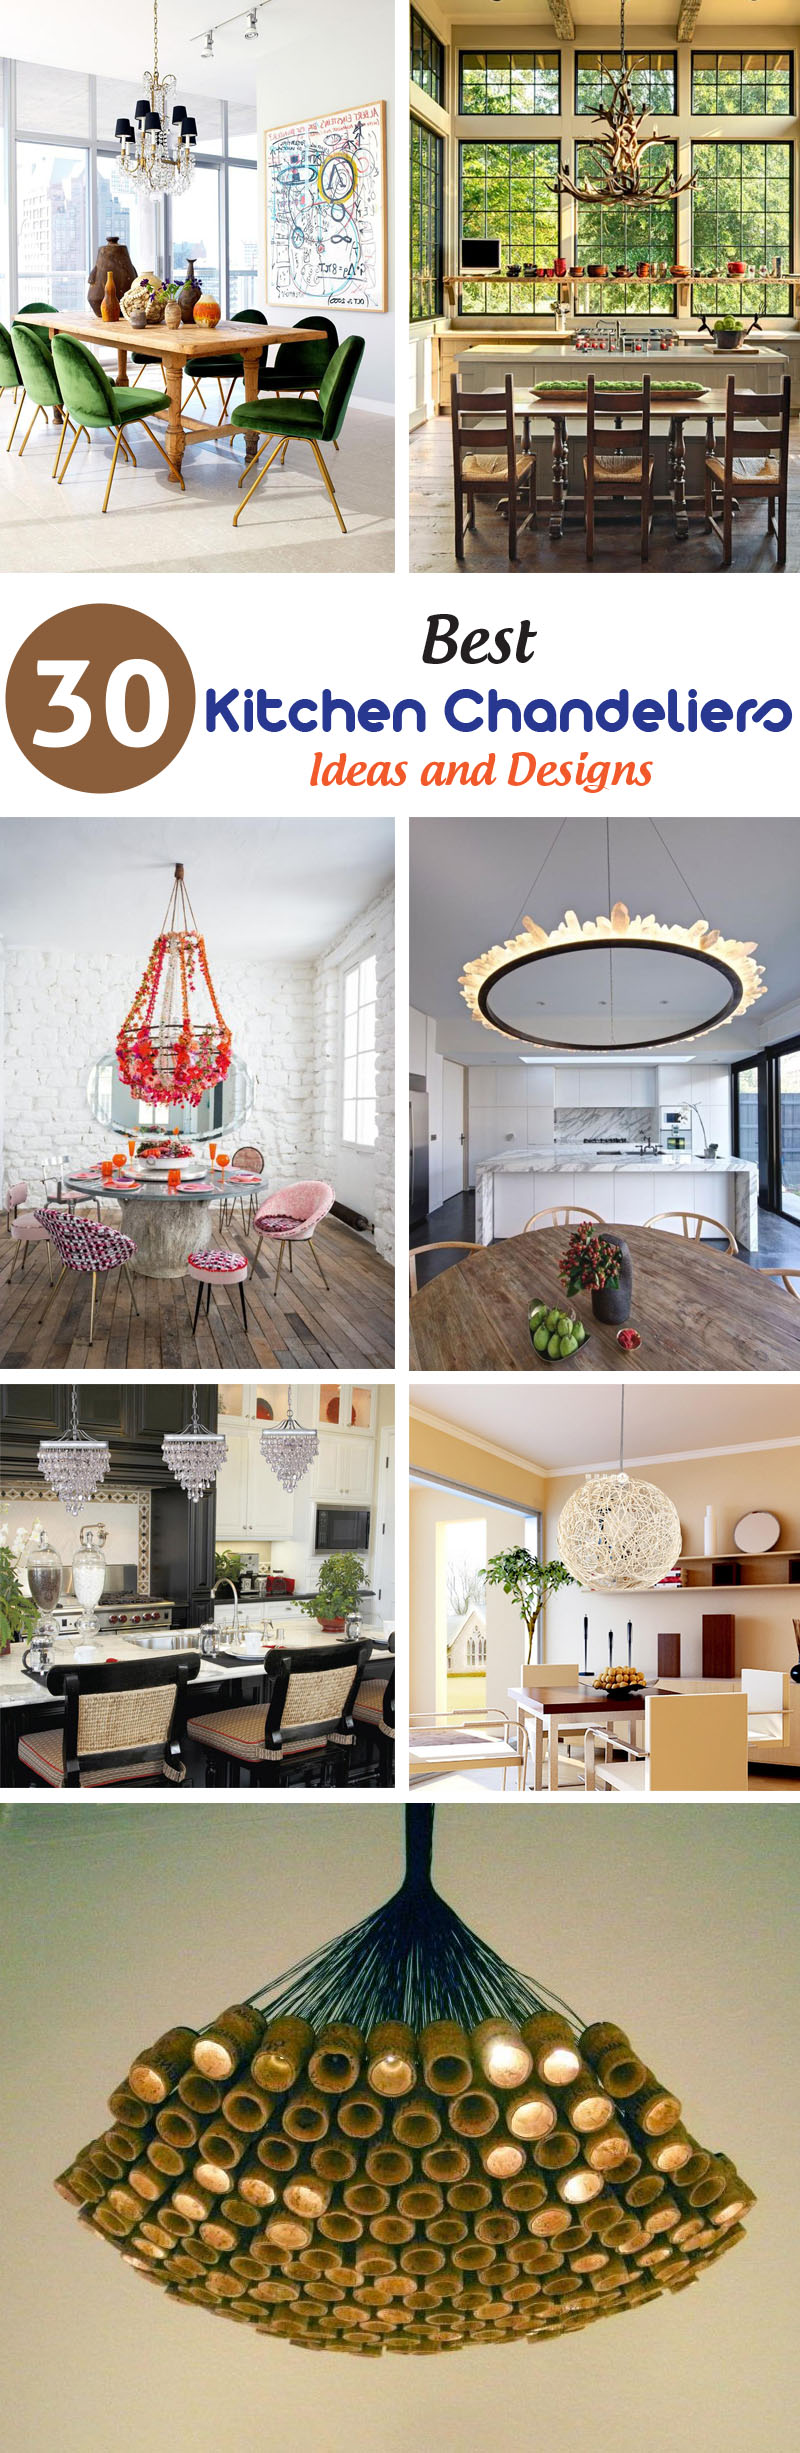 best kitchen chandeliers ideas and designs